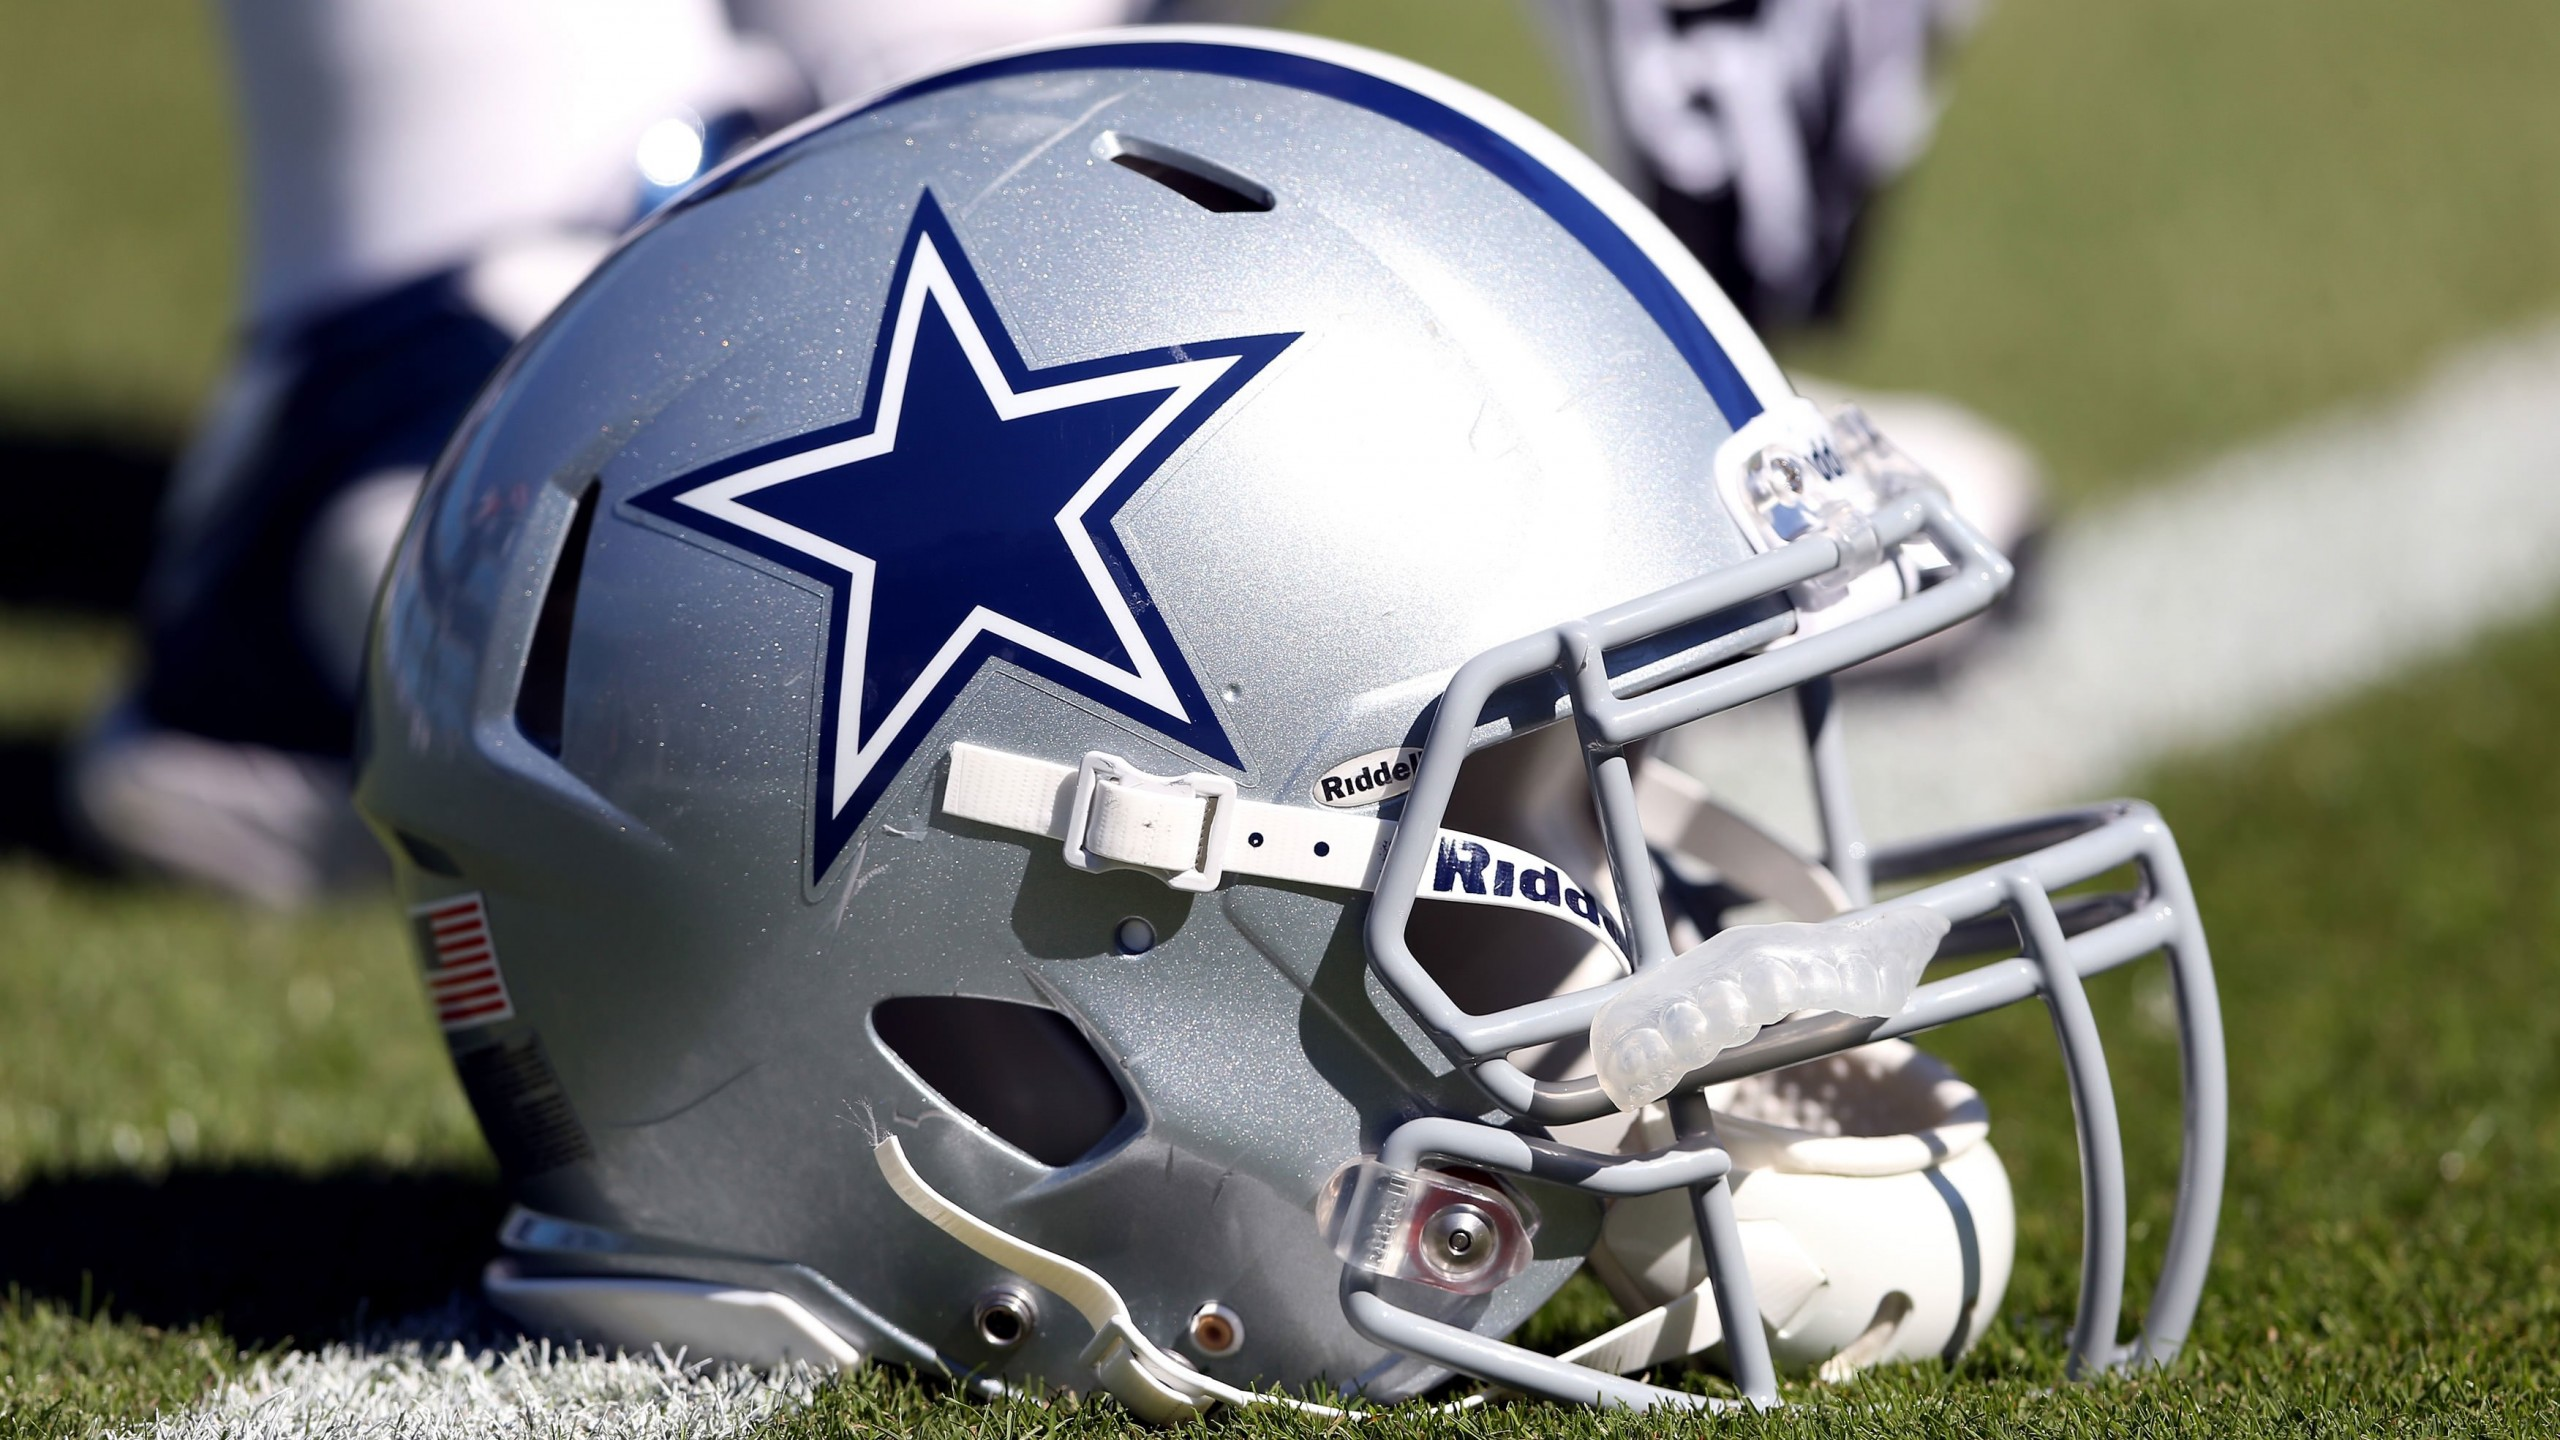 Dallas Cowboys Helmet Wallpaper for Social Media YouTube Channel Art